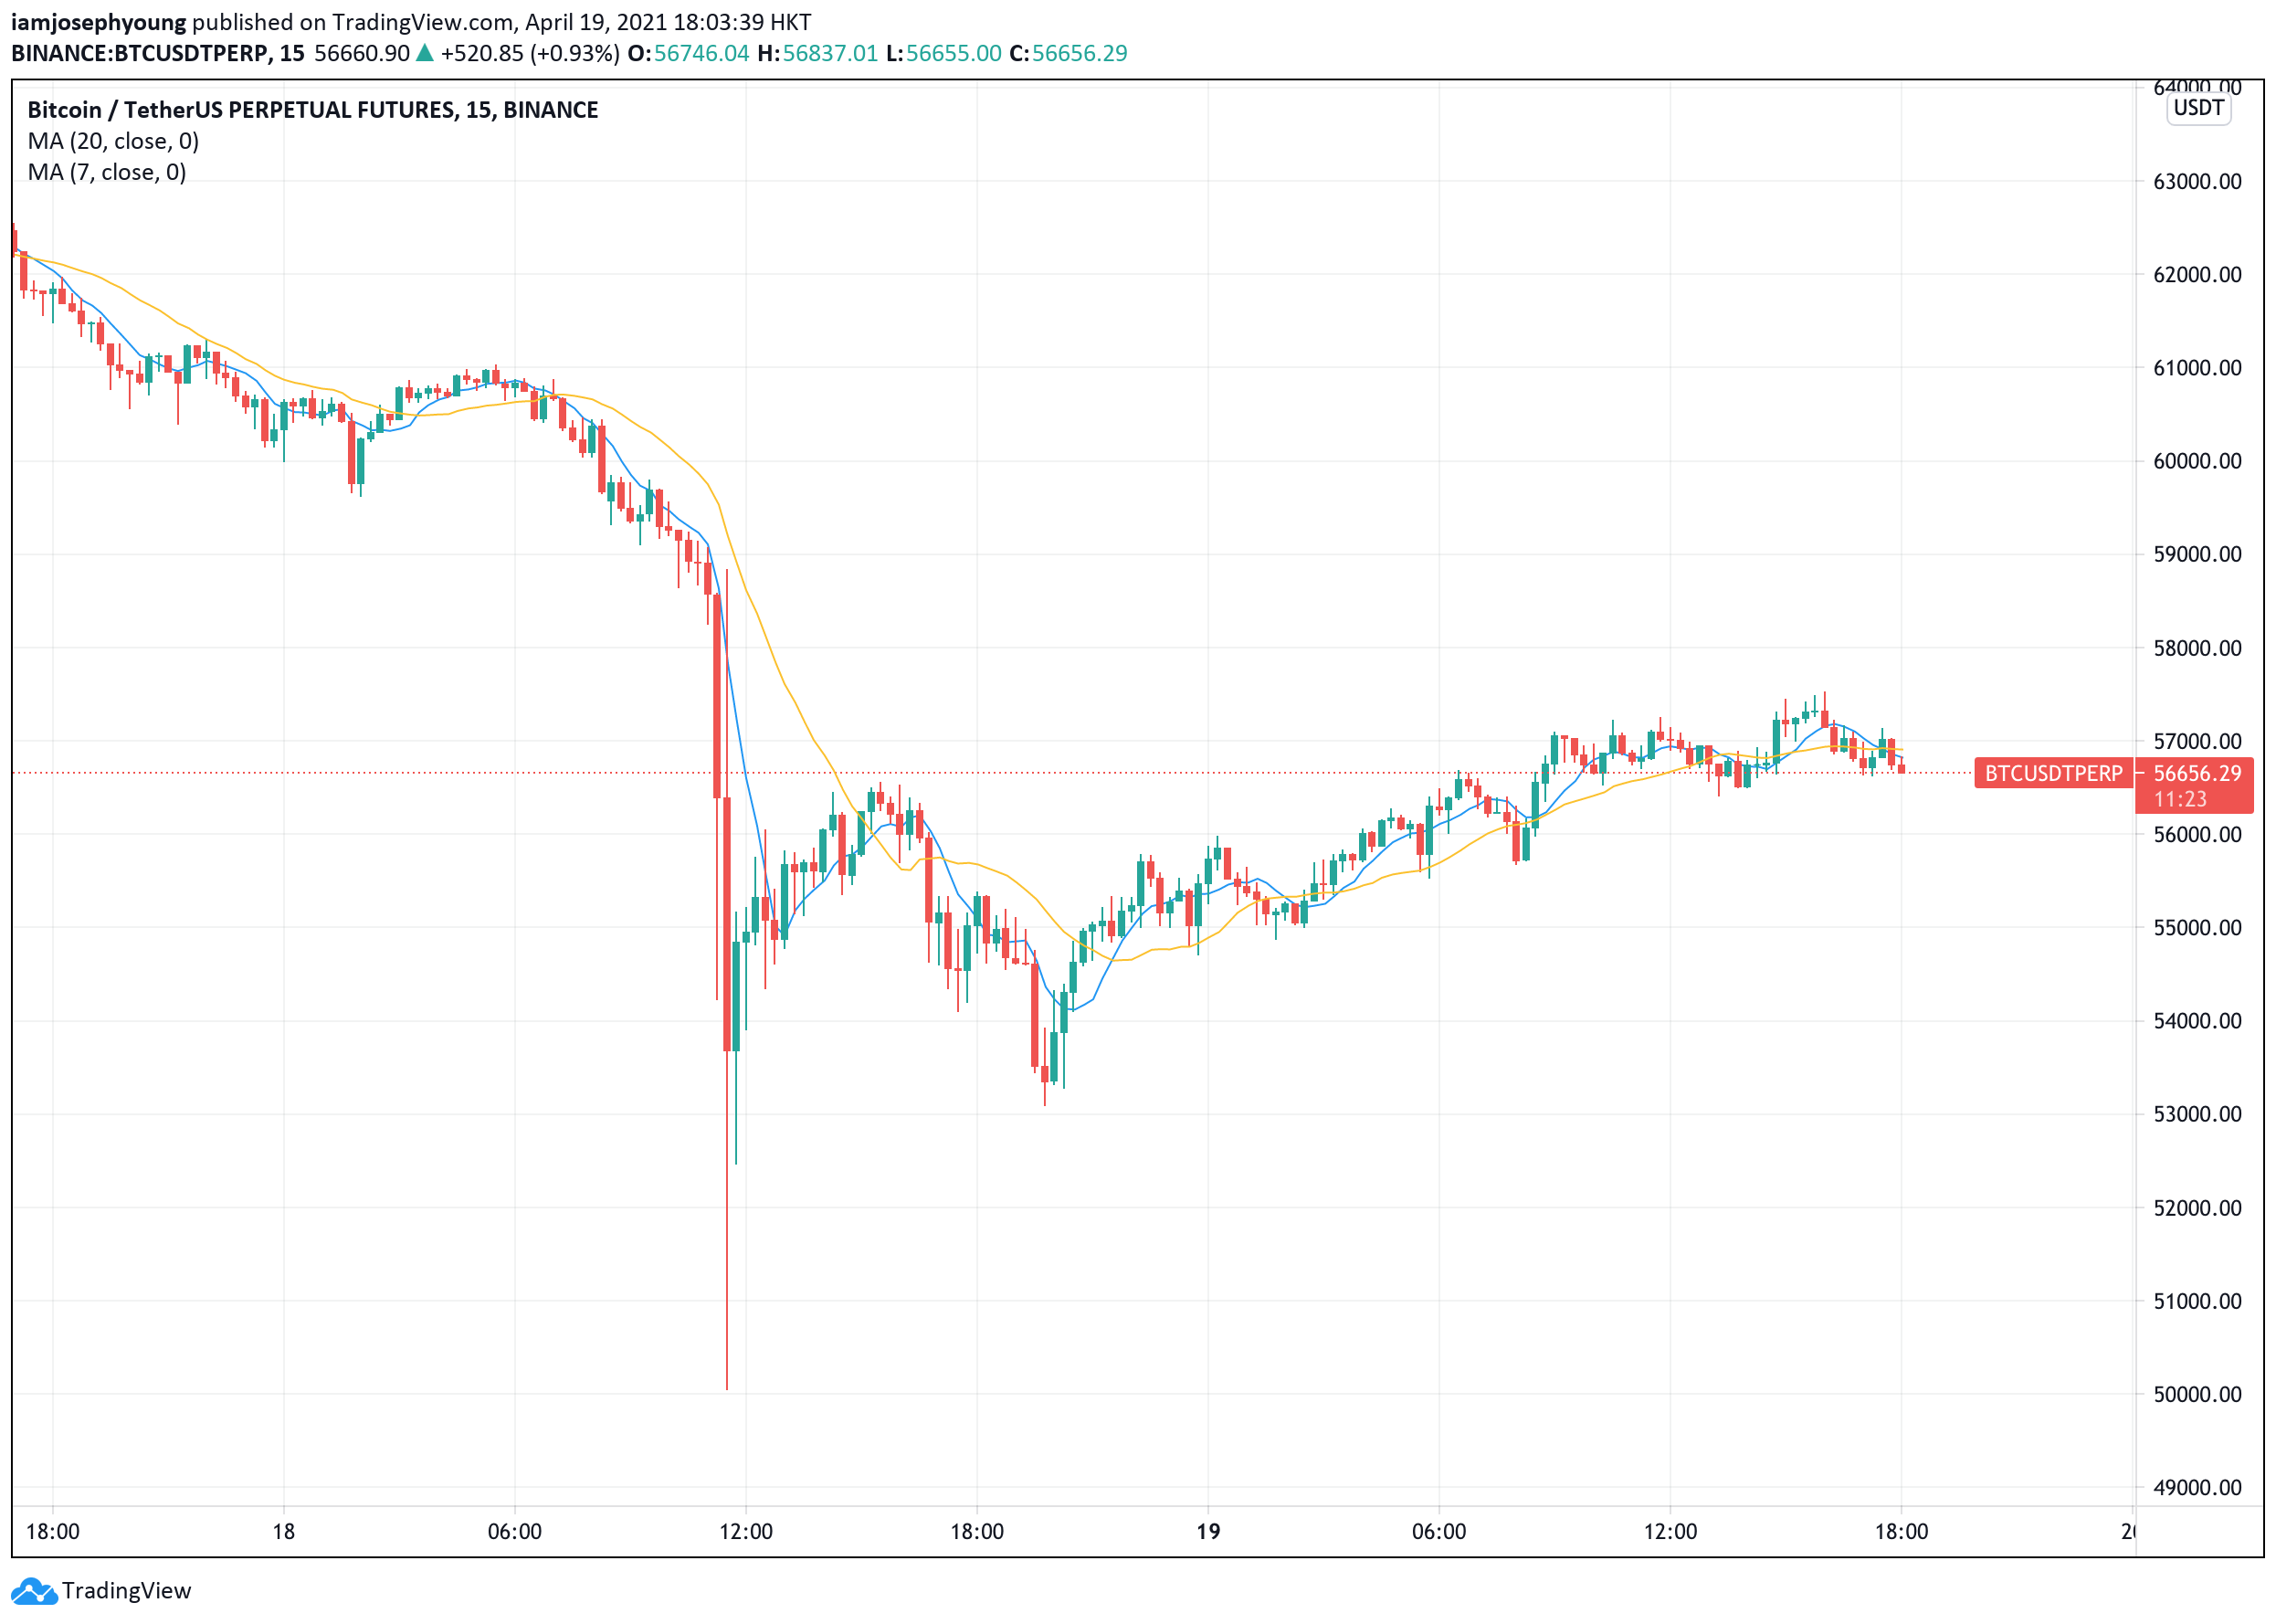 Bitcoin traders are eyeing these price levels as BTC rebounds from weekend crash